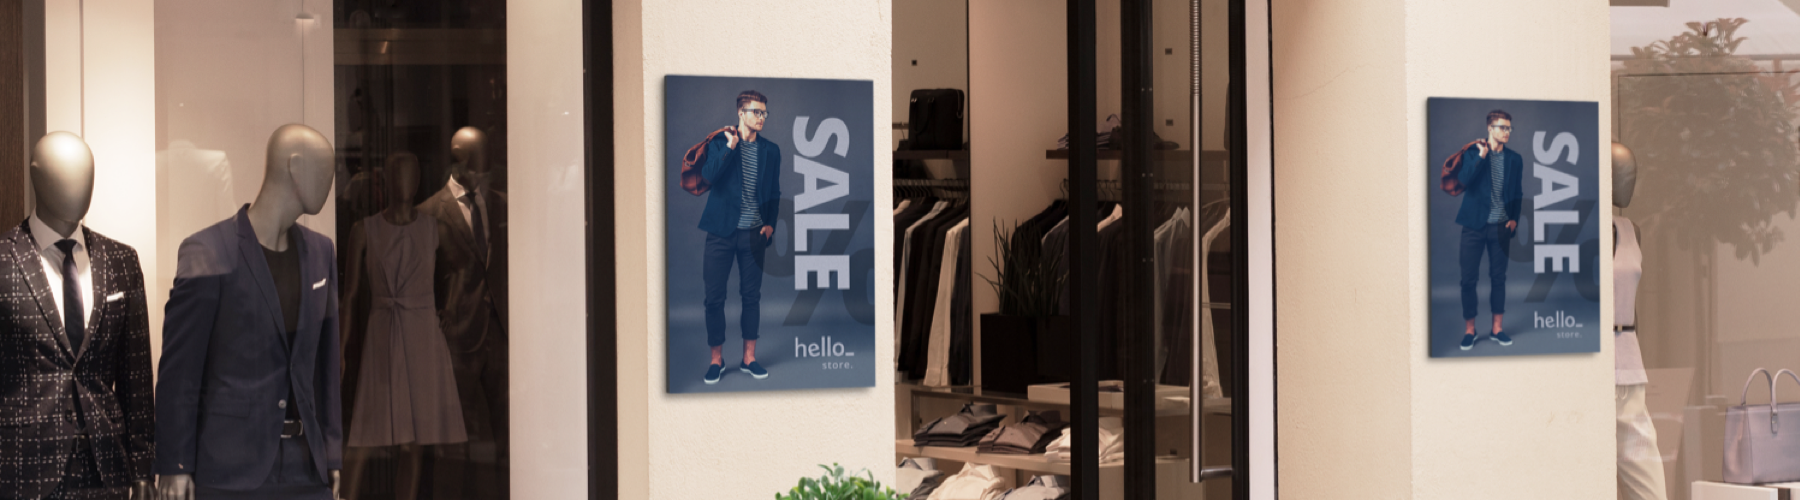 How To Know What Signage Material To Use?